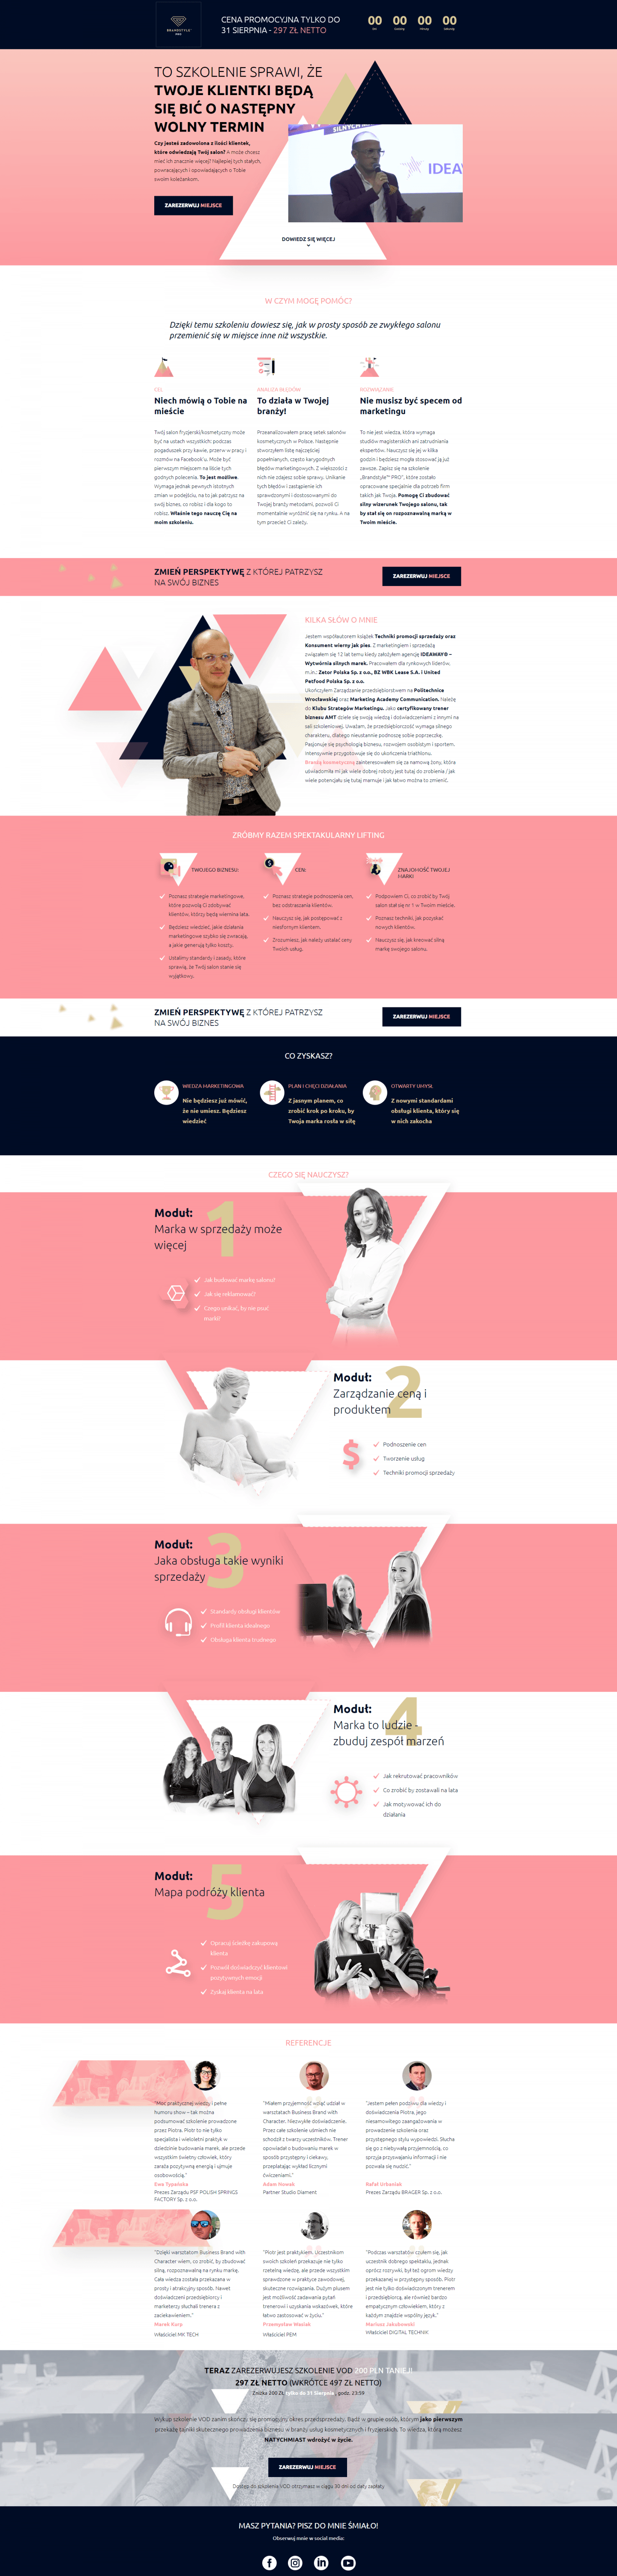 Brandstyle Course Landing Page